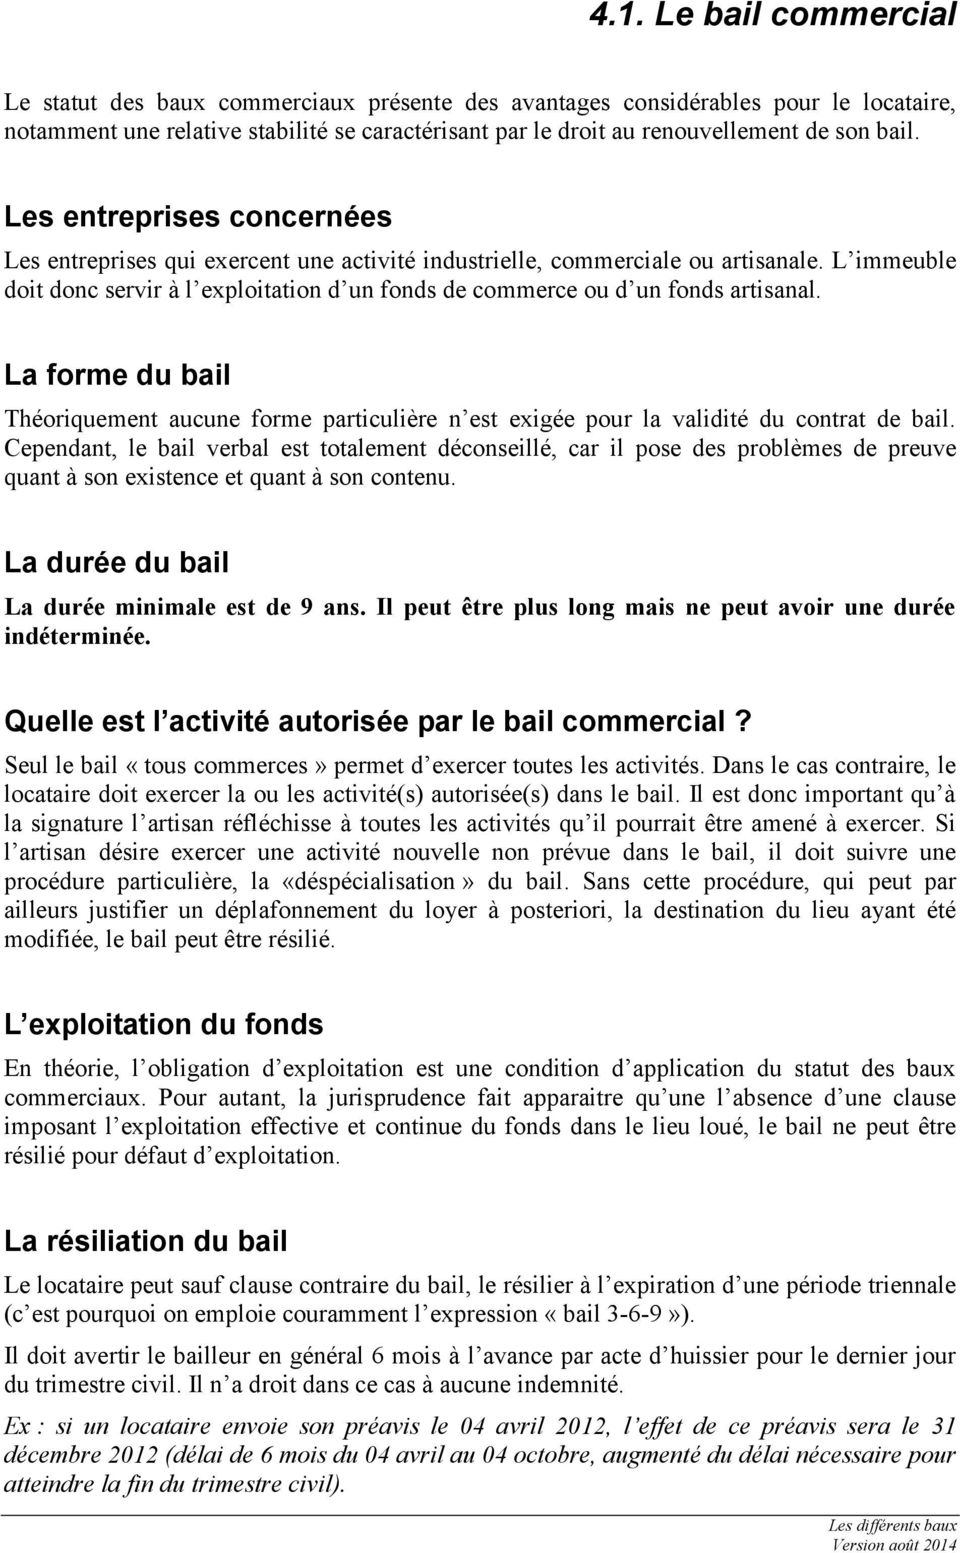 Stage De Preparation A L Installation 4 Les Differents Baux Pdf